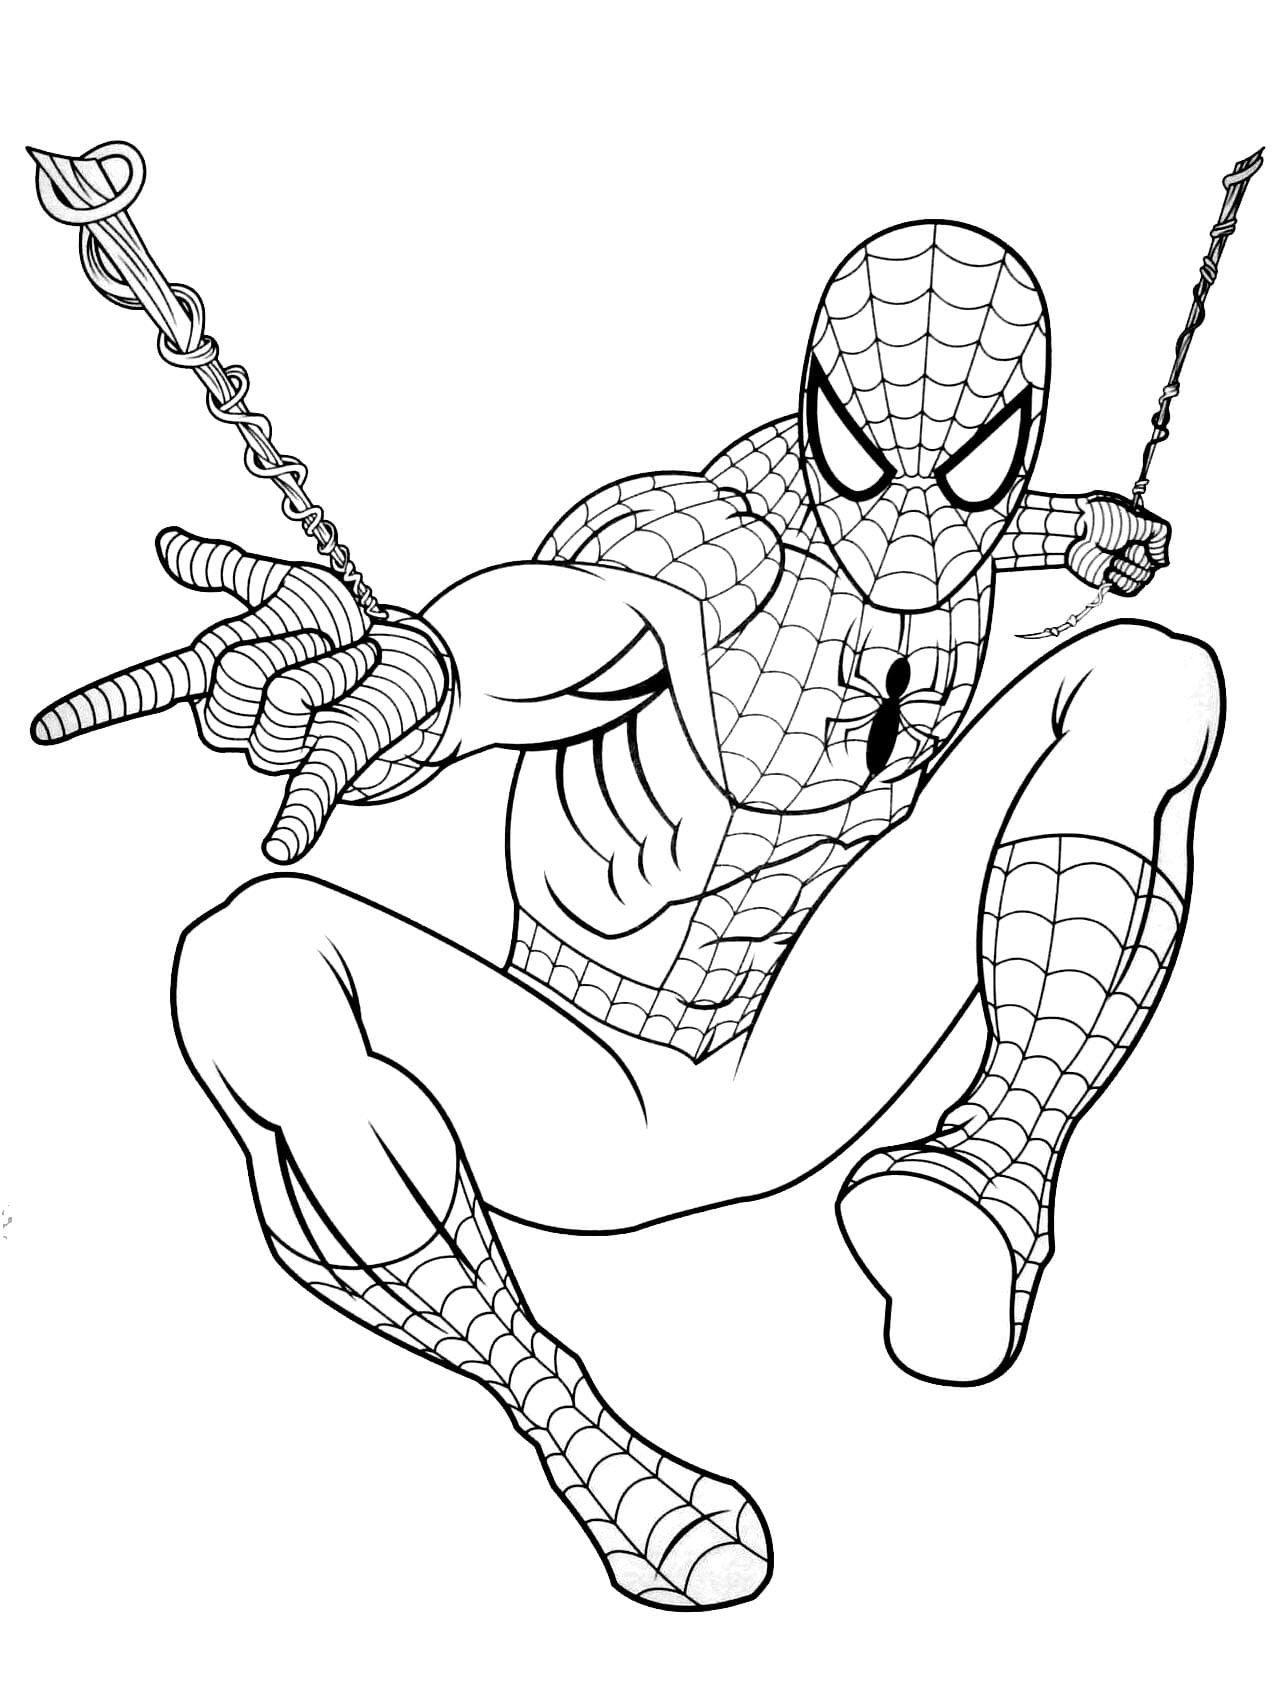 Disegni Da Colorare Gratis Spiderman.Supereroi Da Colorare Unico Disegni Da Colorare Di Spiderman Stampa Online Supereroe Nel 2020 Disegni Da Colorare Lego Disegni Da Colorare Pagine Da Colorare Per Adulti